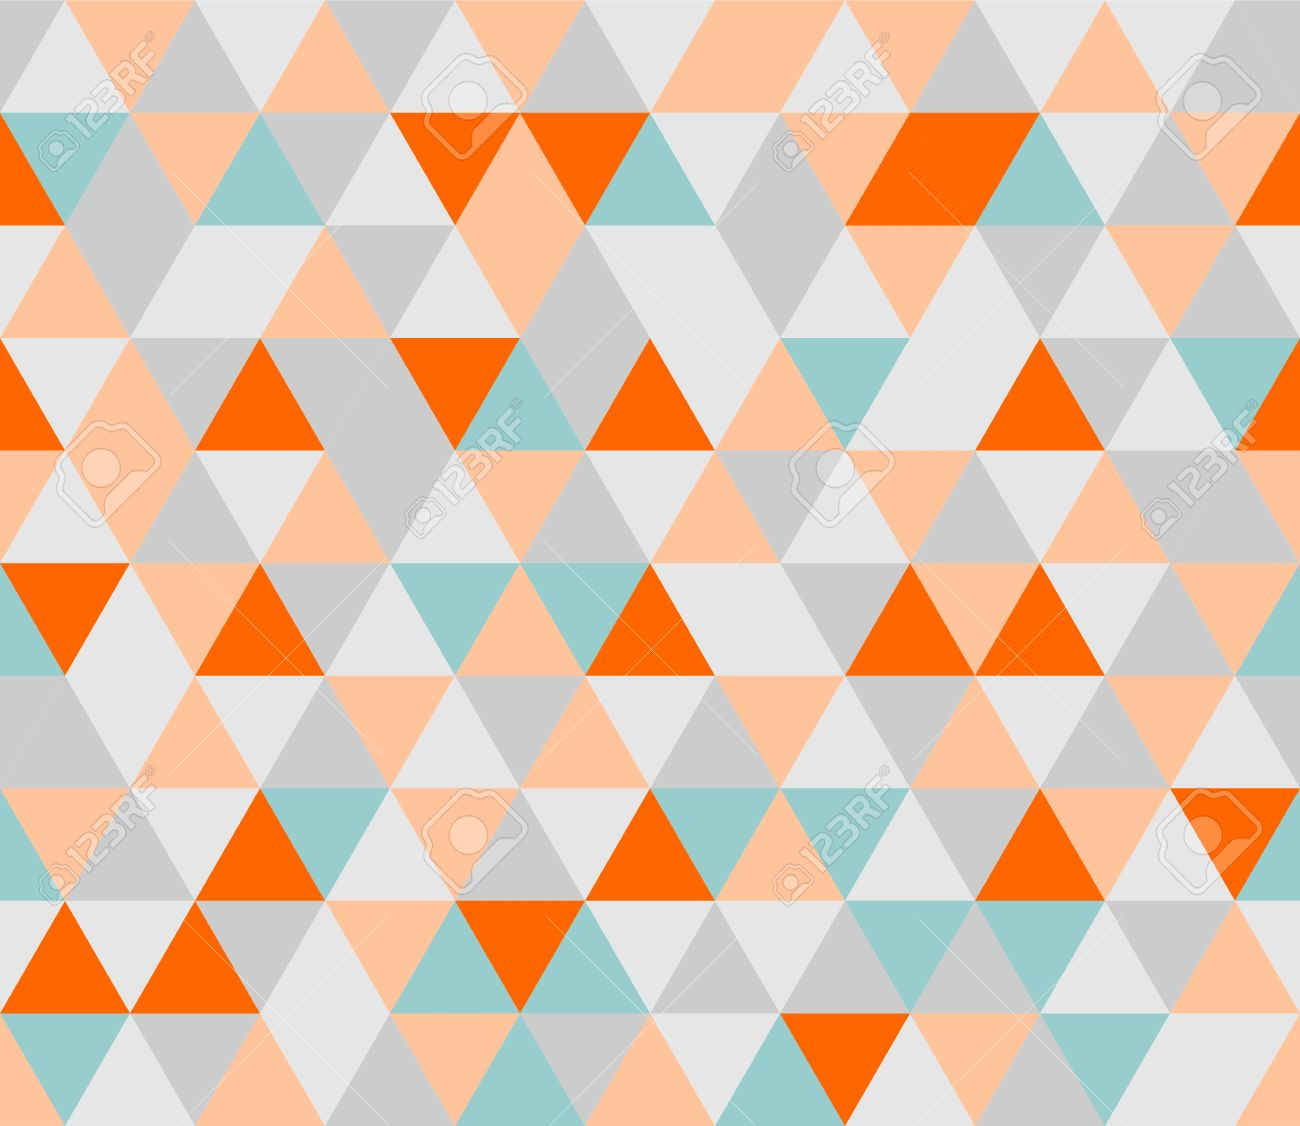 29896322 colorful tile vector background illustration grey orange pink and mint green triangle geometric mosa